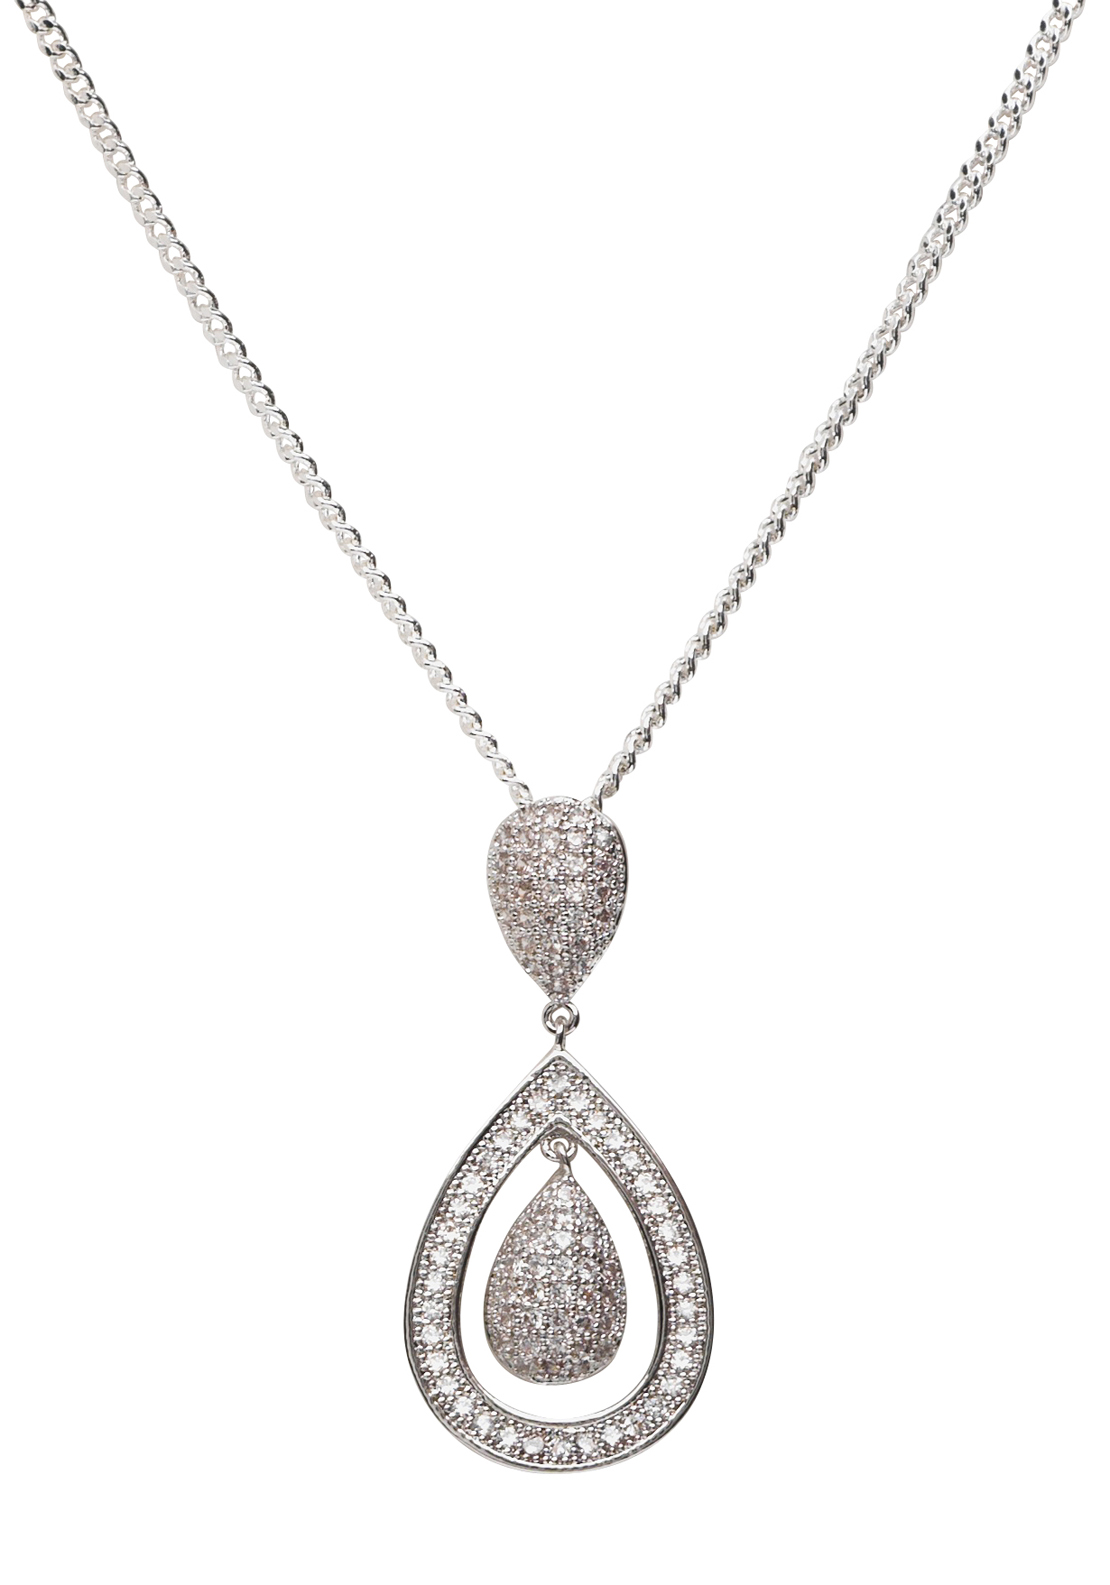 Killarney Crystal Micro Open Teardrop Pendant